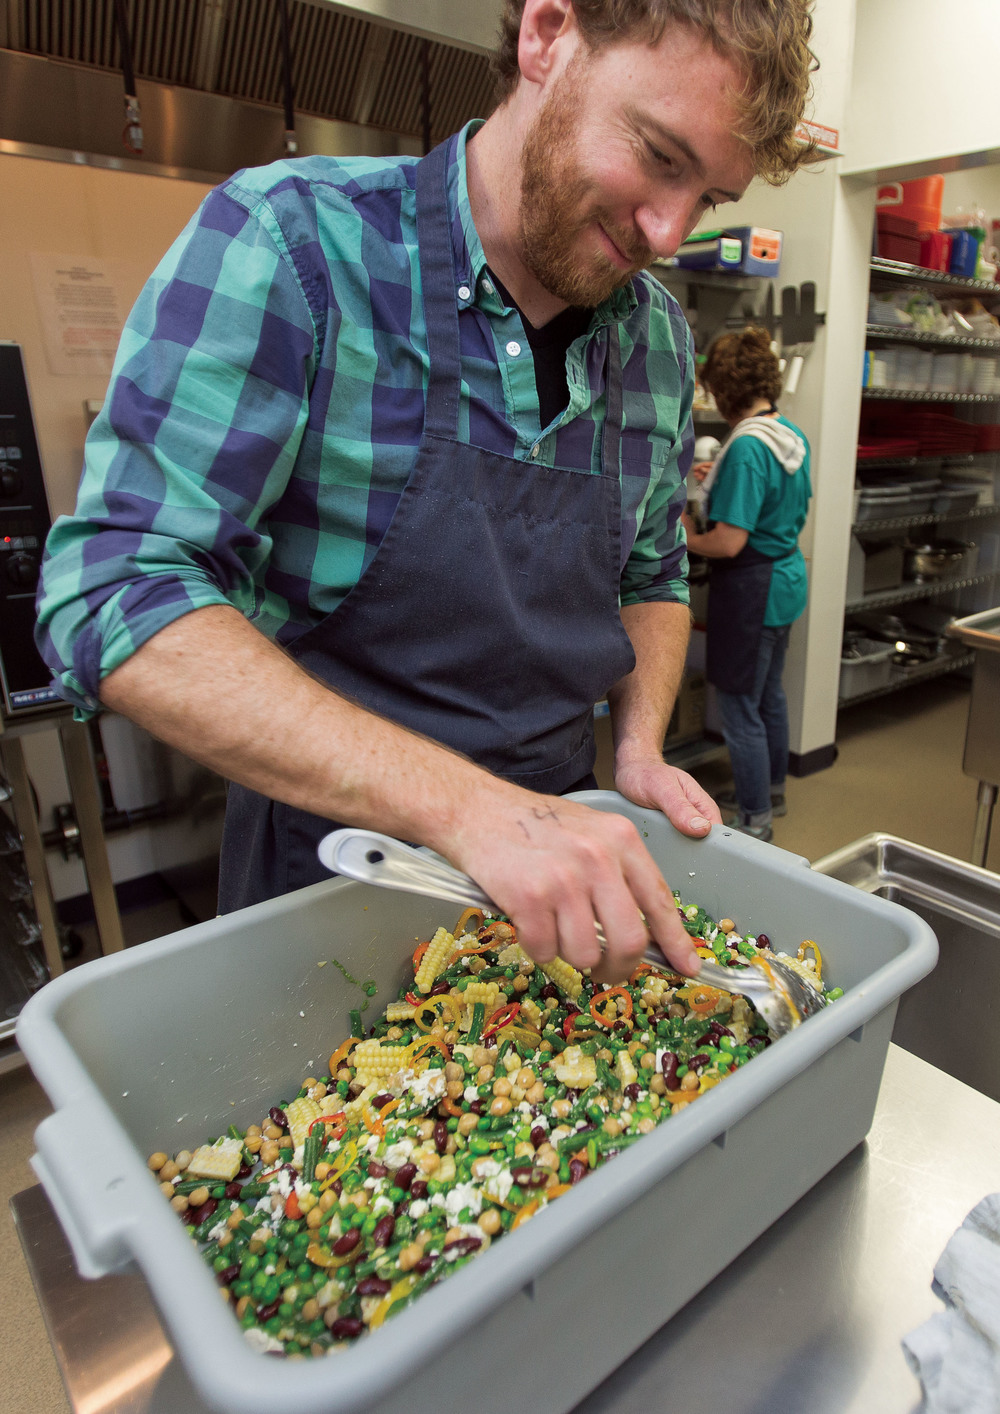 Chas Baki, a chef at Gather, prepares a bean salad for students at theJackson Hole Classical Academy.